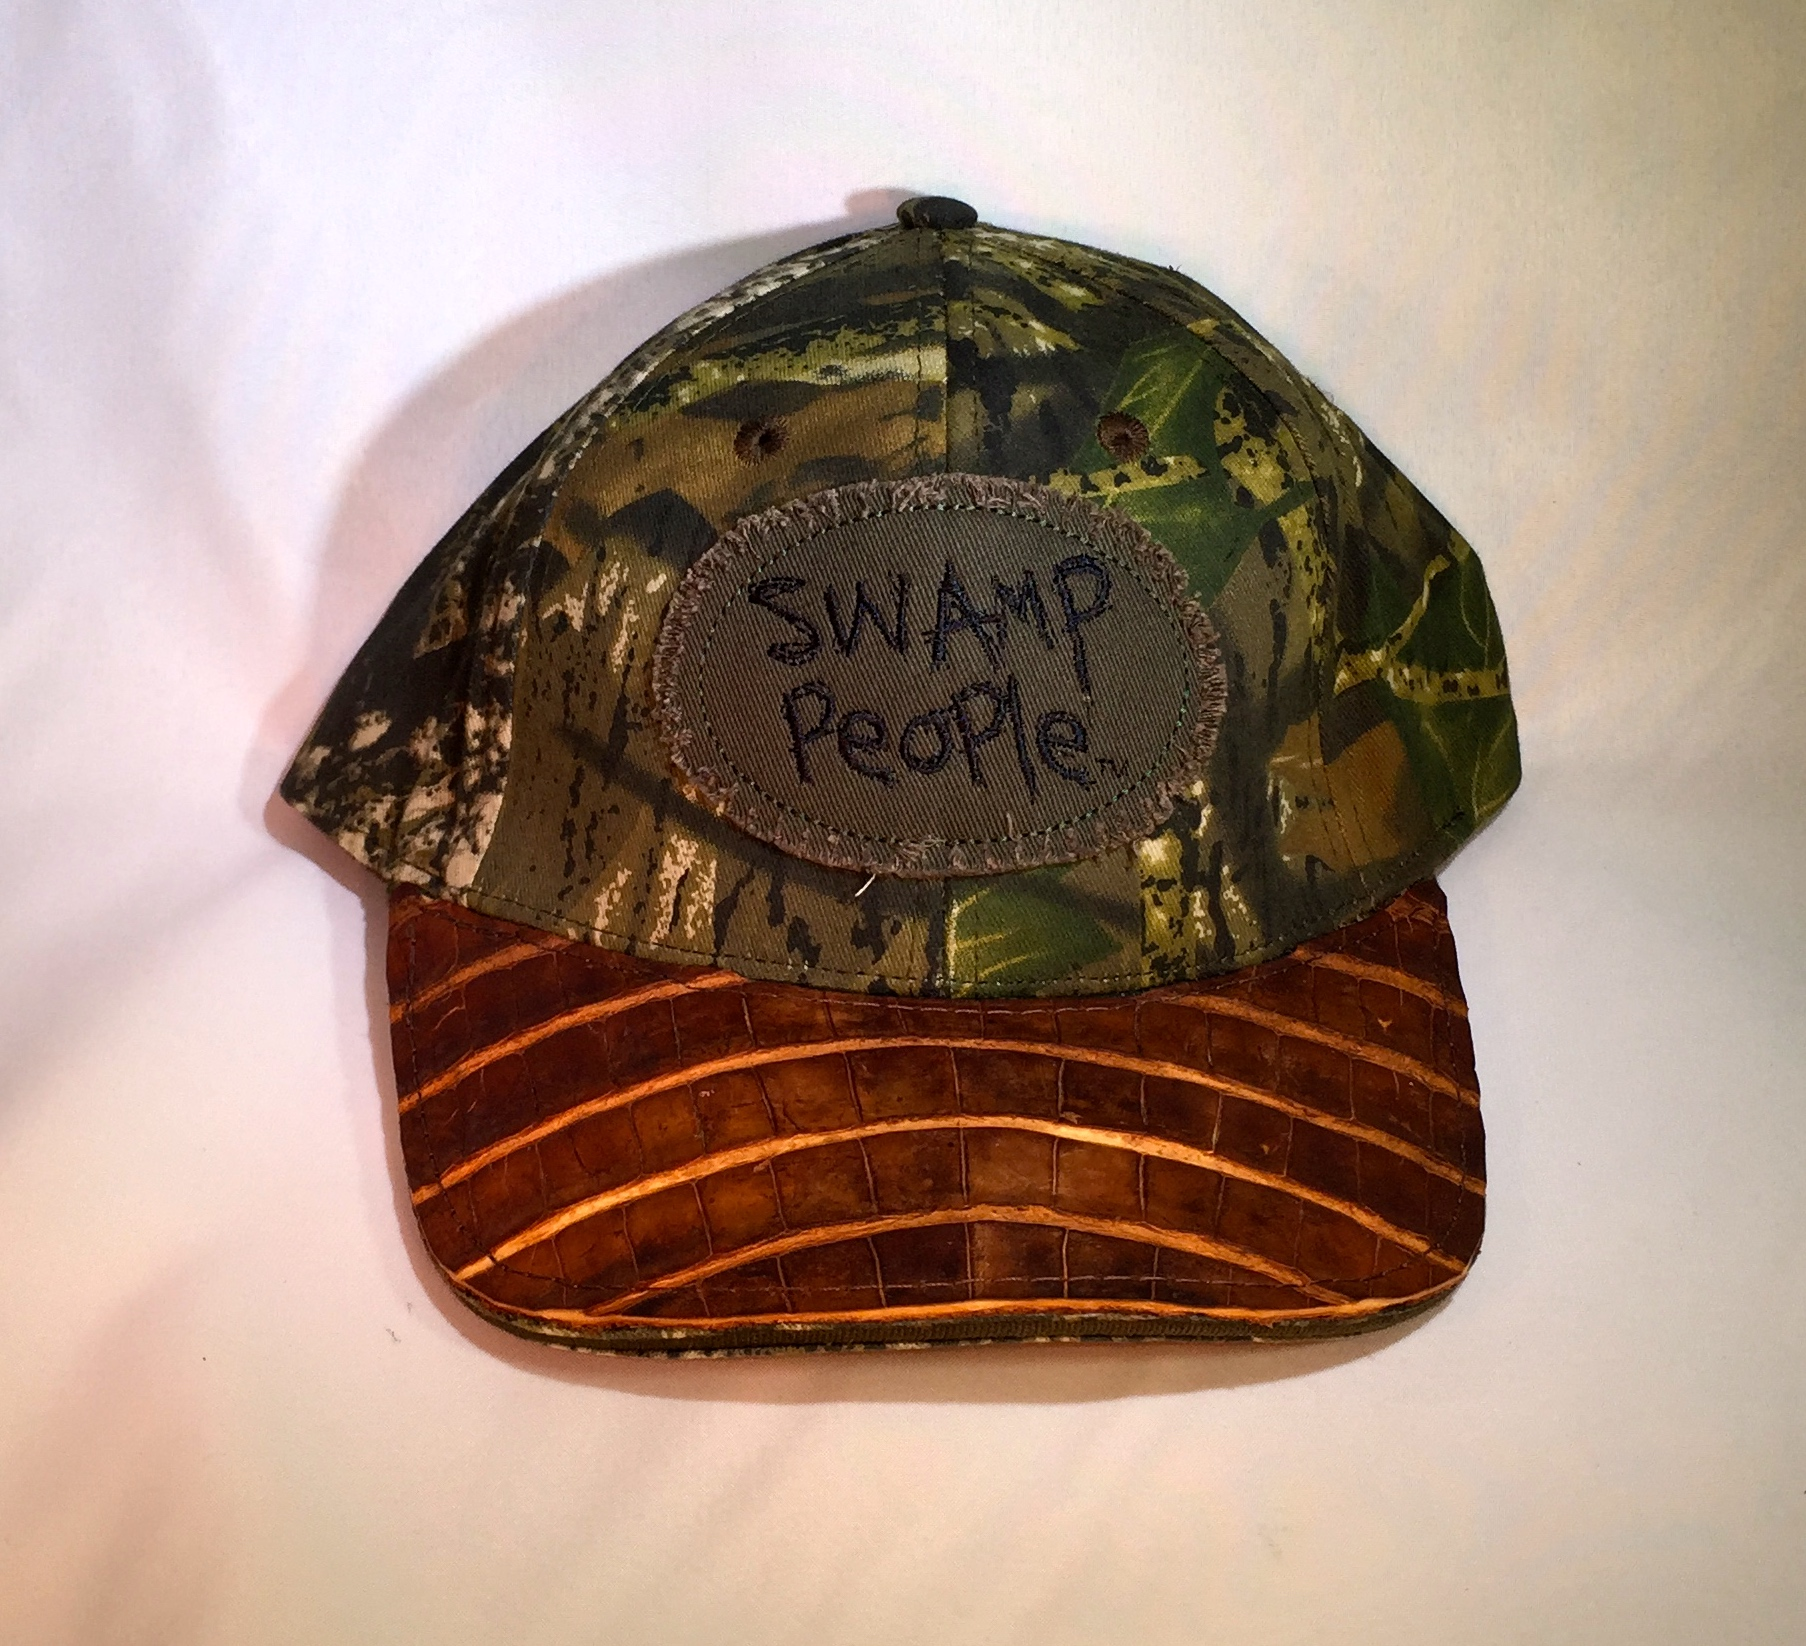 Swamp People Gator Hat